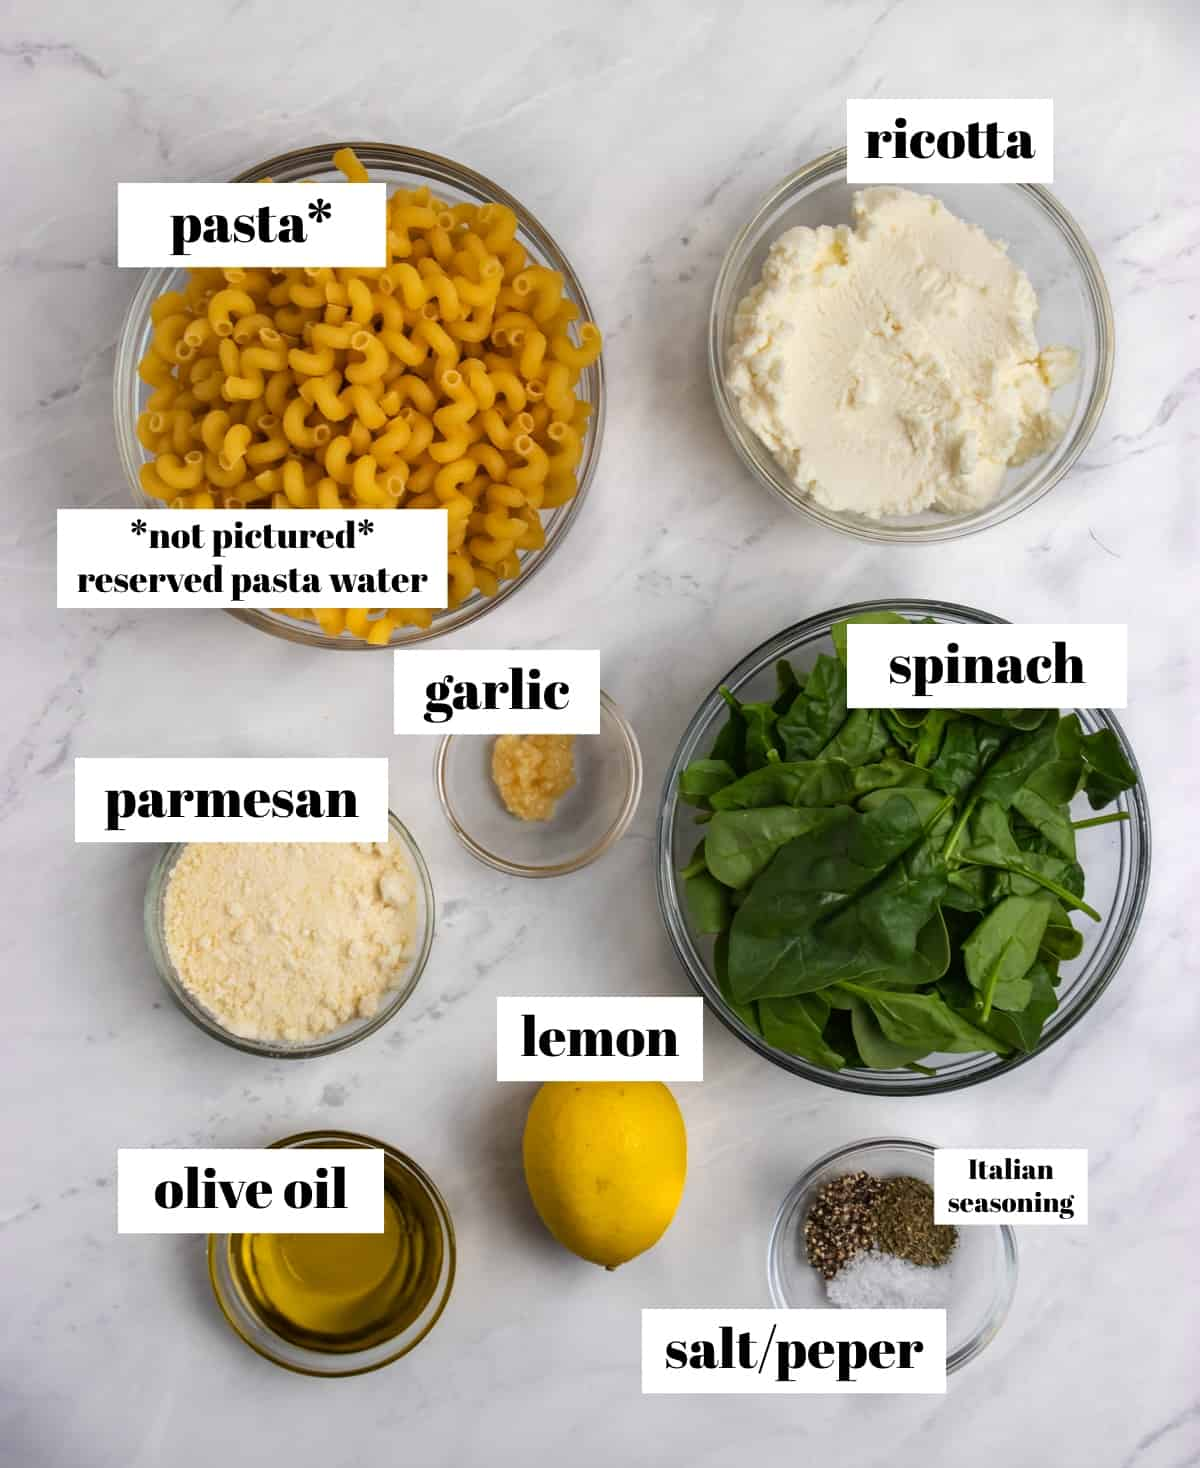 Spinach, ricotta, lemon, parmesan and other ingredients labeled on counter.